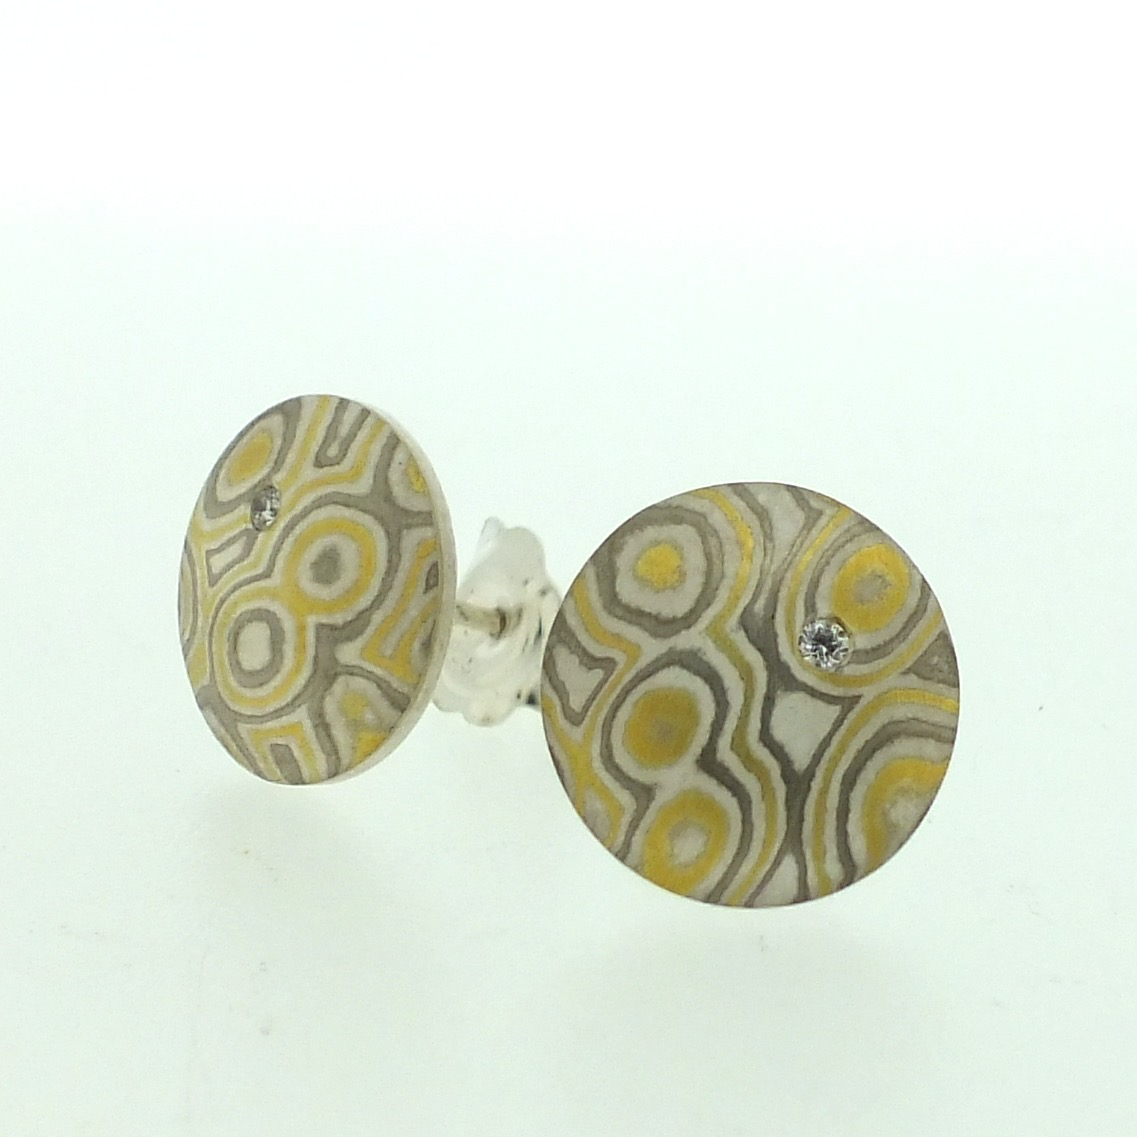 22k gold, 18k white gold and silver mokume gane medium Discus stud earrings